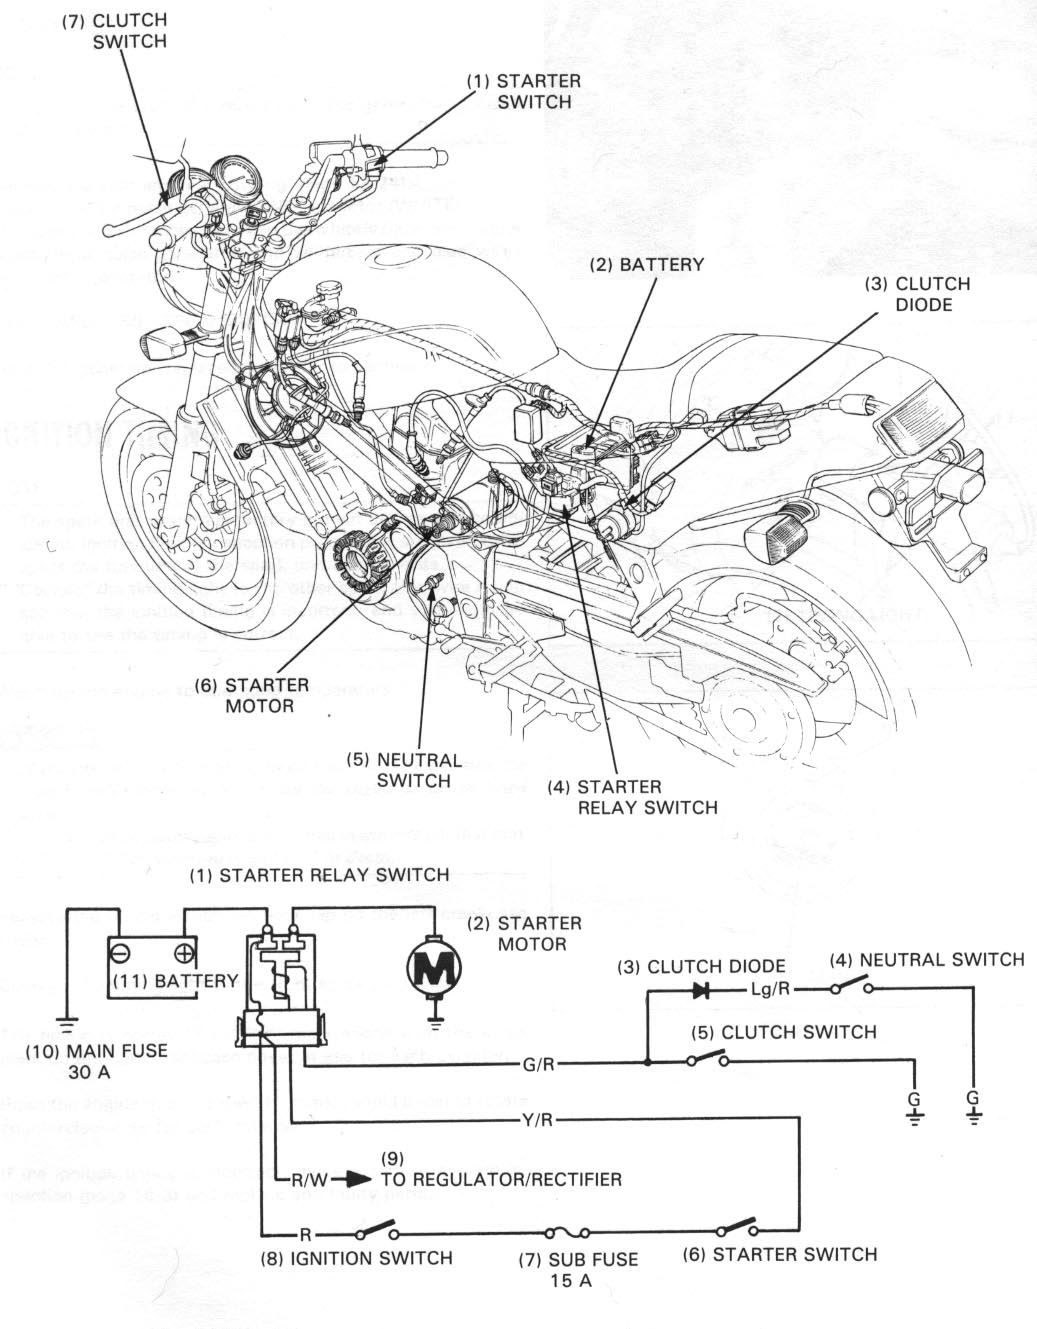 Honda NT650 service manual, section 17, Electric Starter